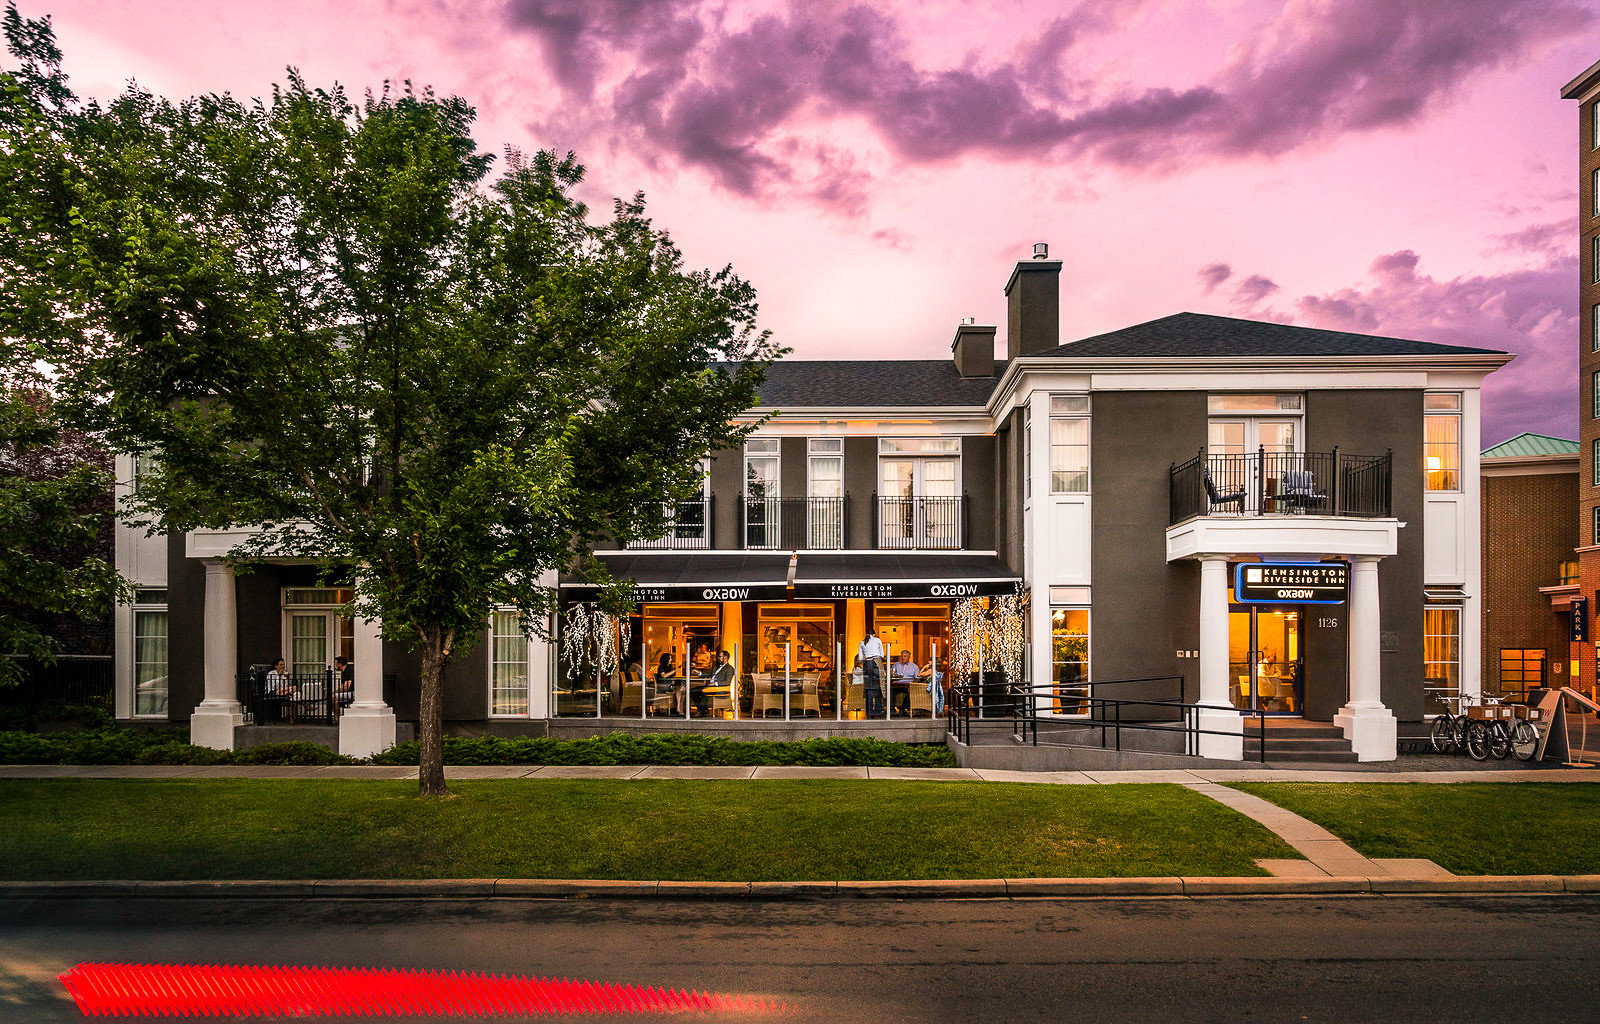 Alberta Boutique Hotels Canada Hotels home house residential area property mixed use neighbourhood Architecture real estate sky building suburb estate tree facade cottage mansion evening City elevation window Villa